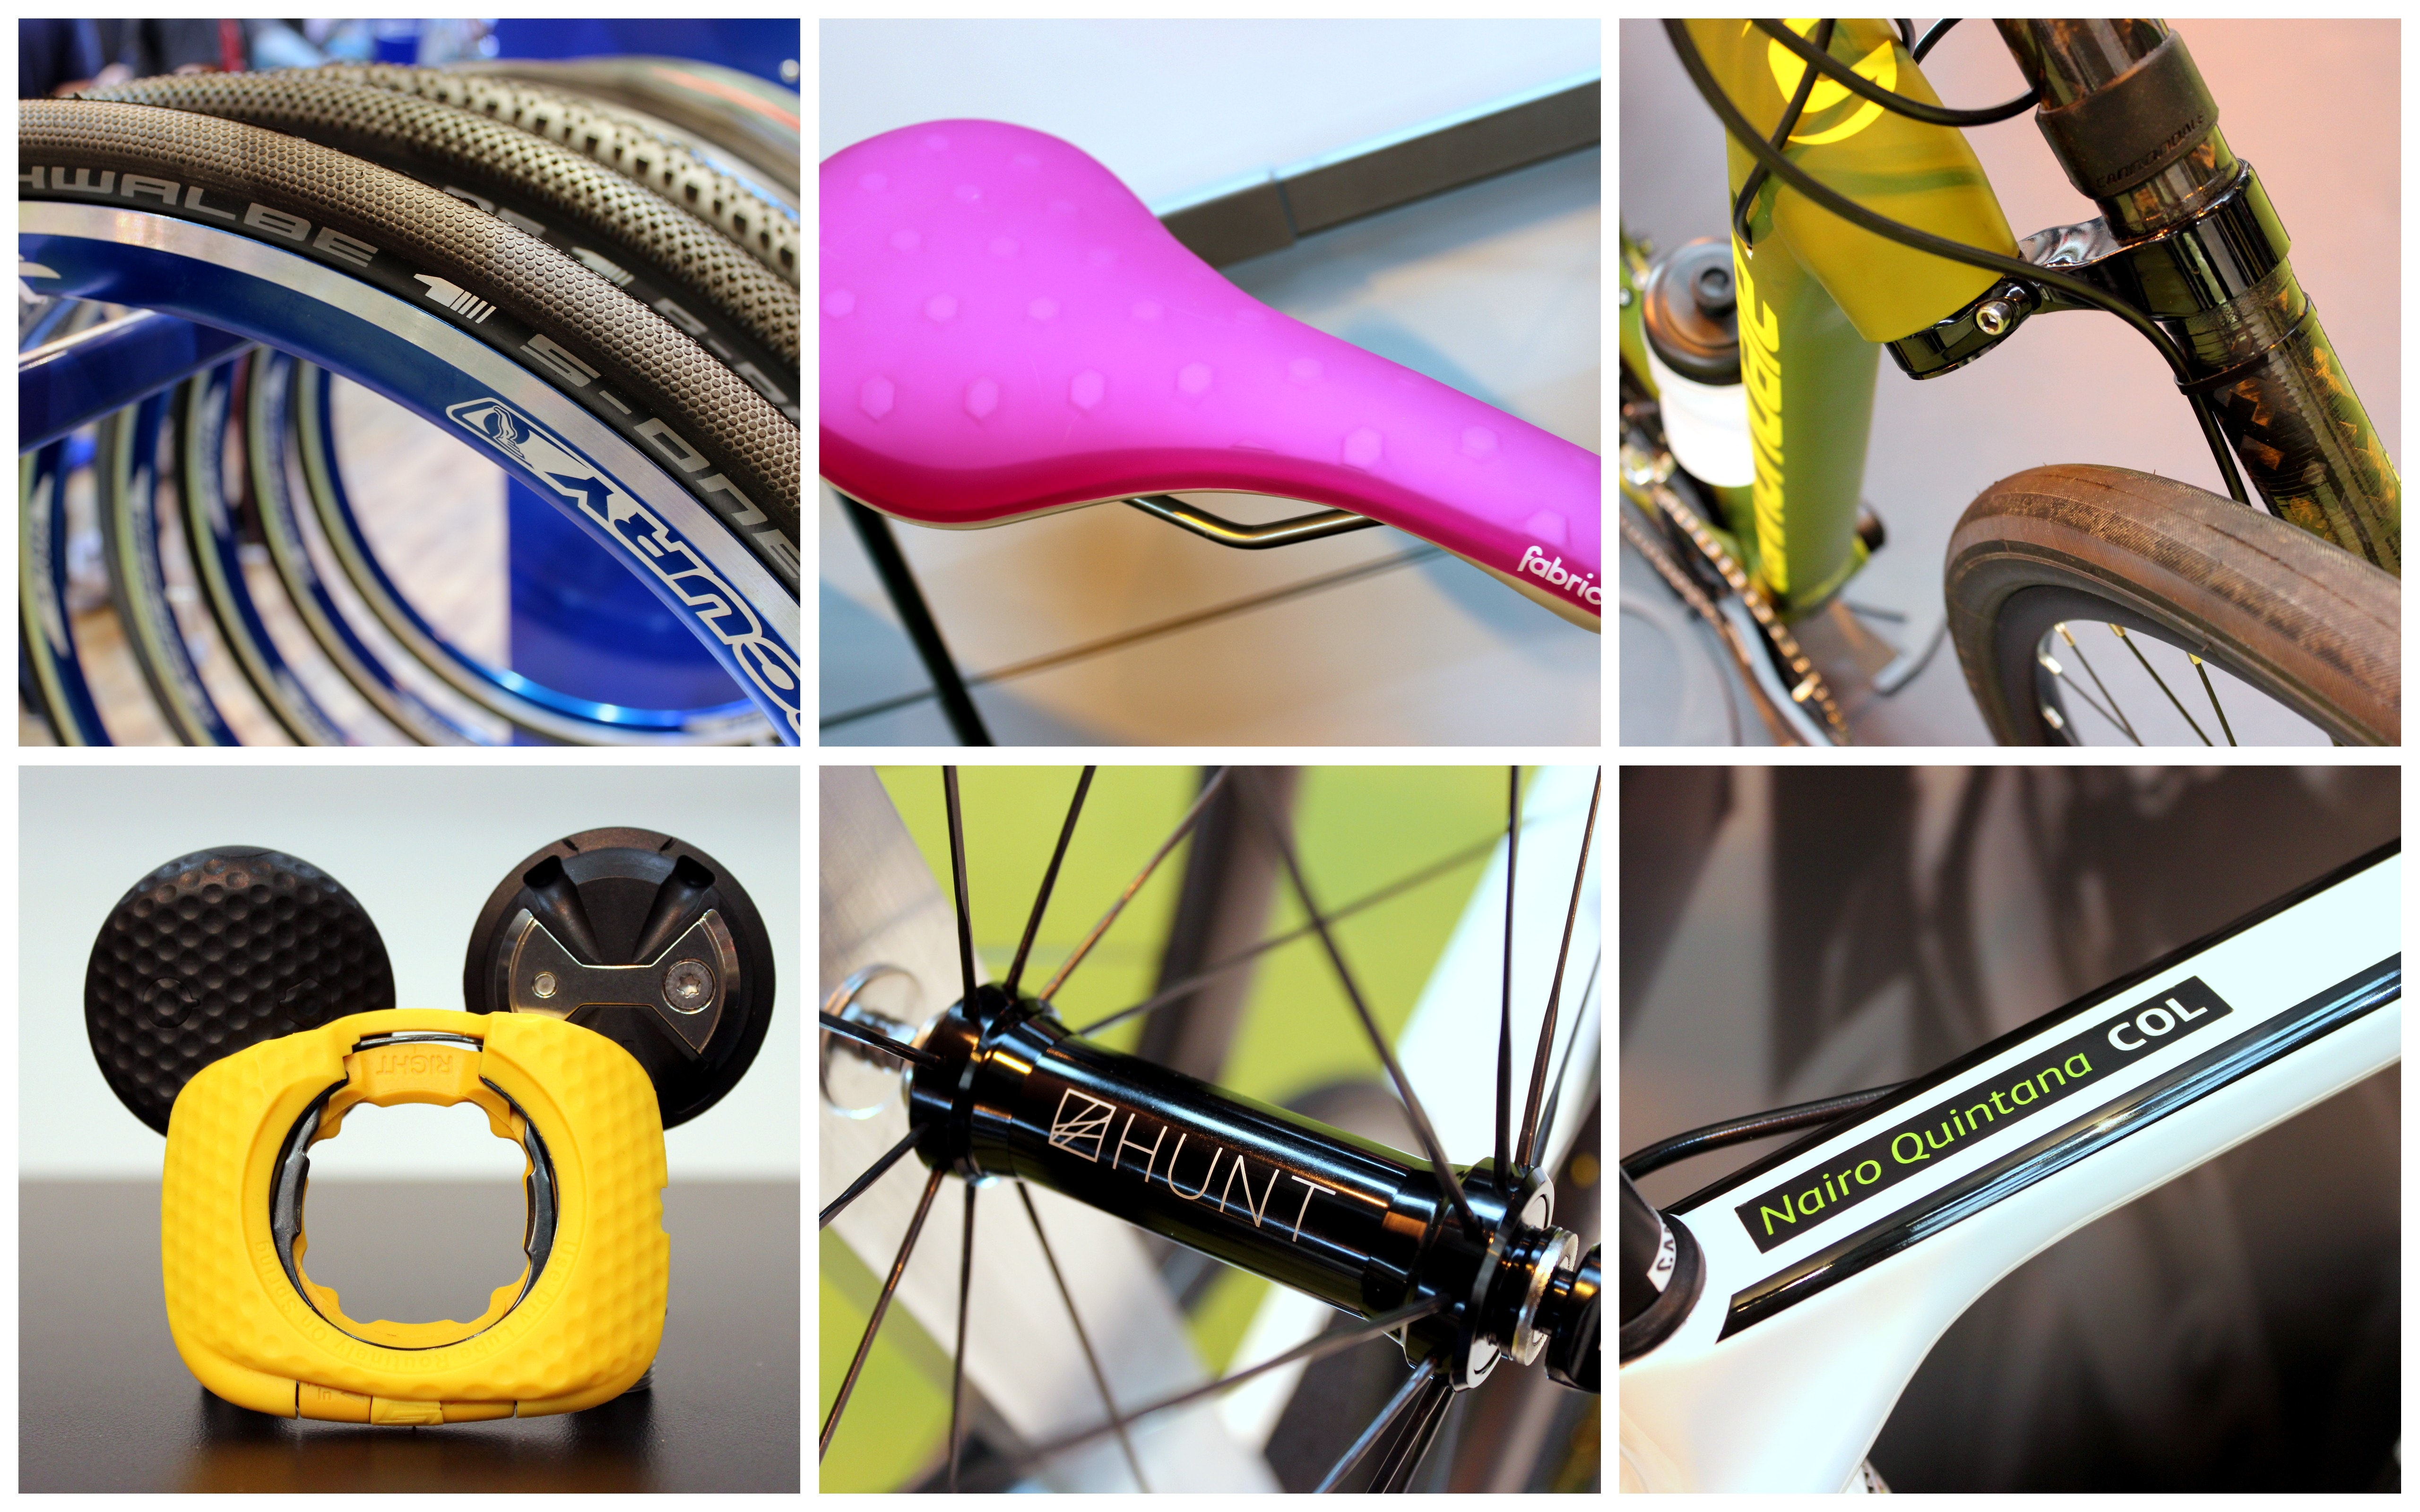 Cycle Show highlights